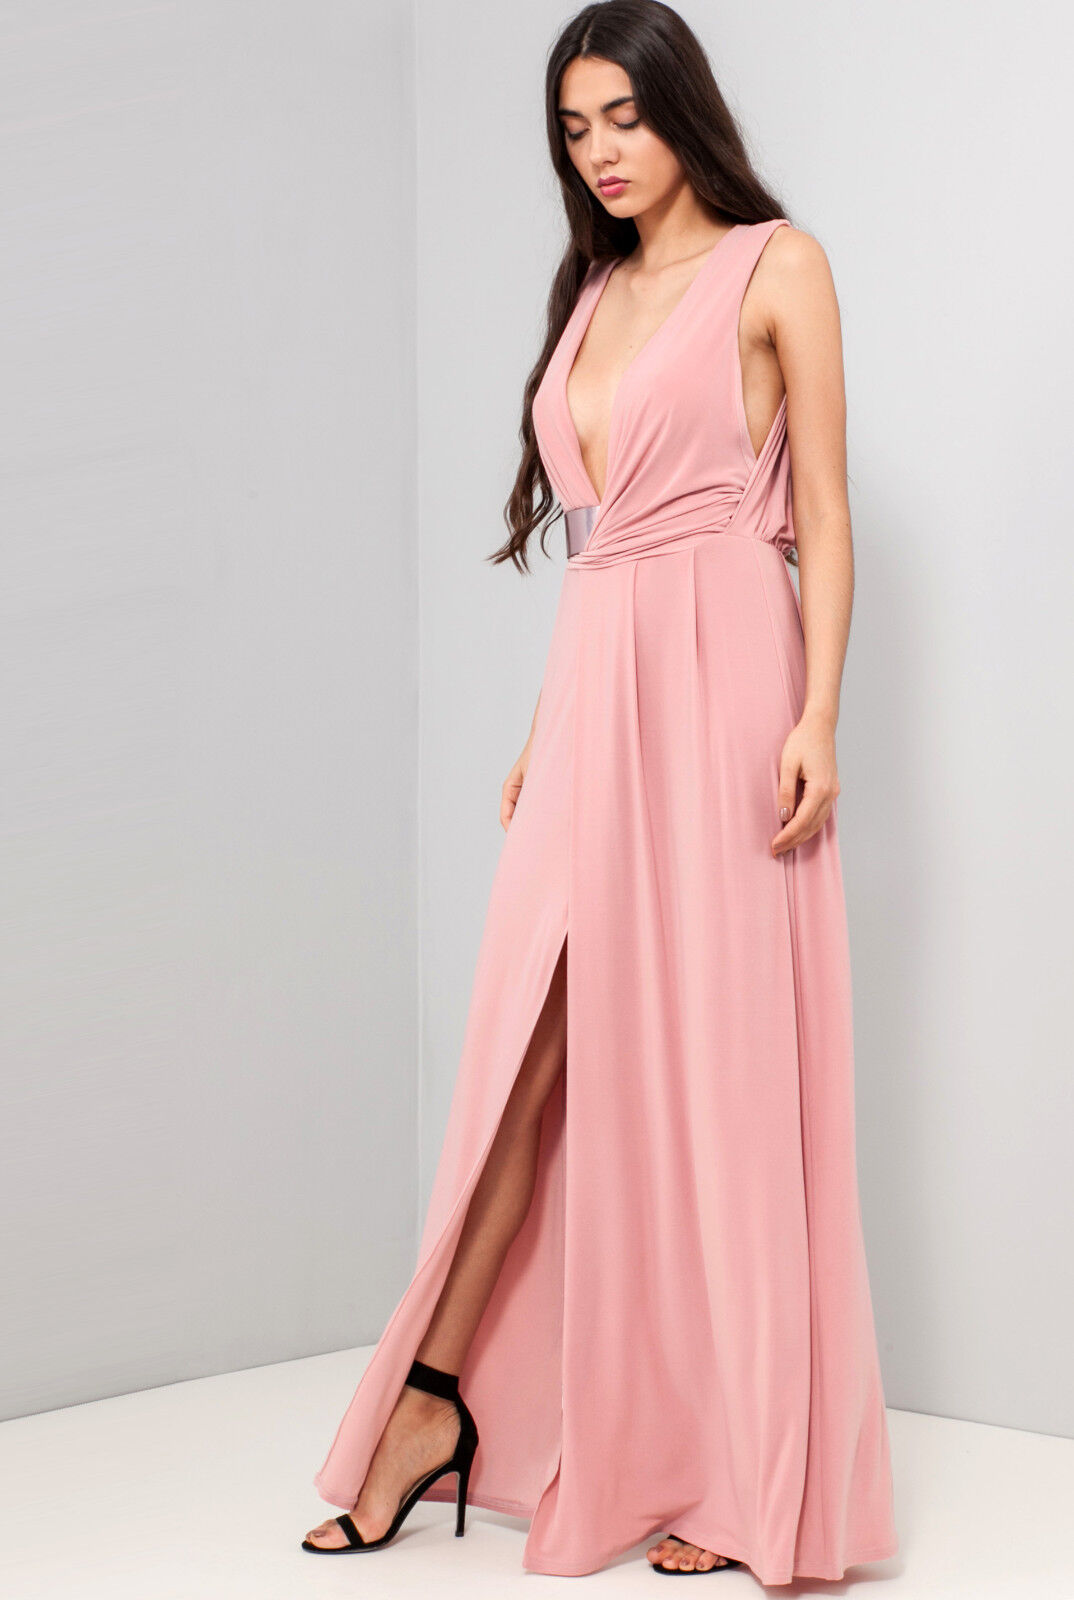 7b3a4cc983 Asos womens new drape neck belted maxi evening going out party JPG  1074x1600 Asos pink dress